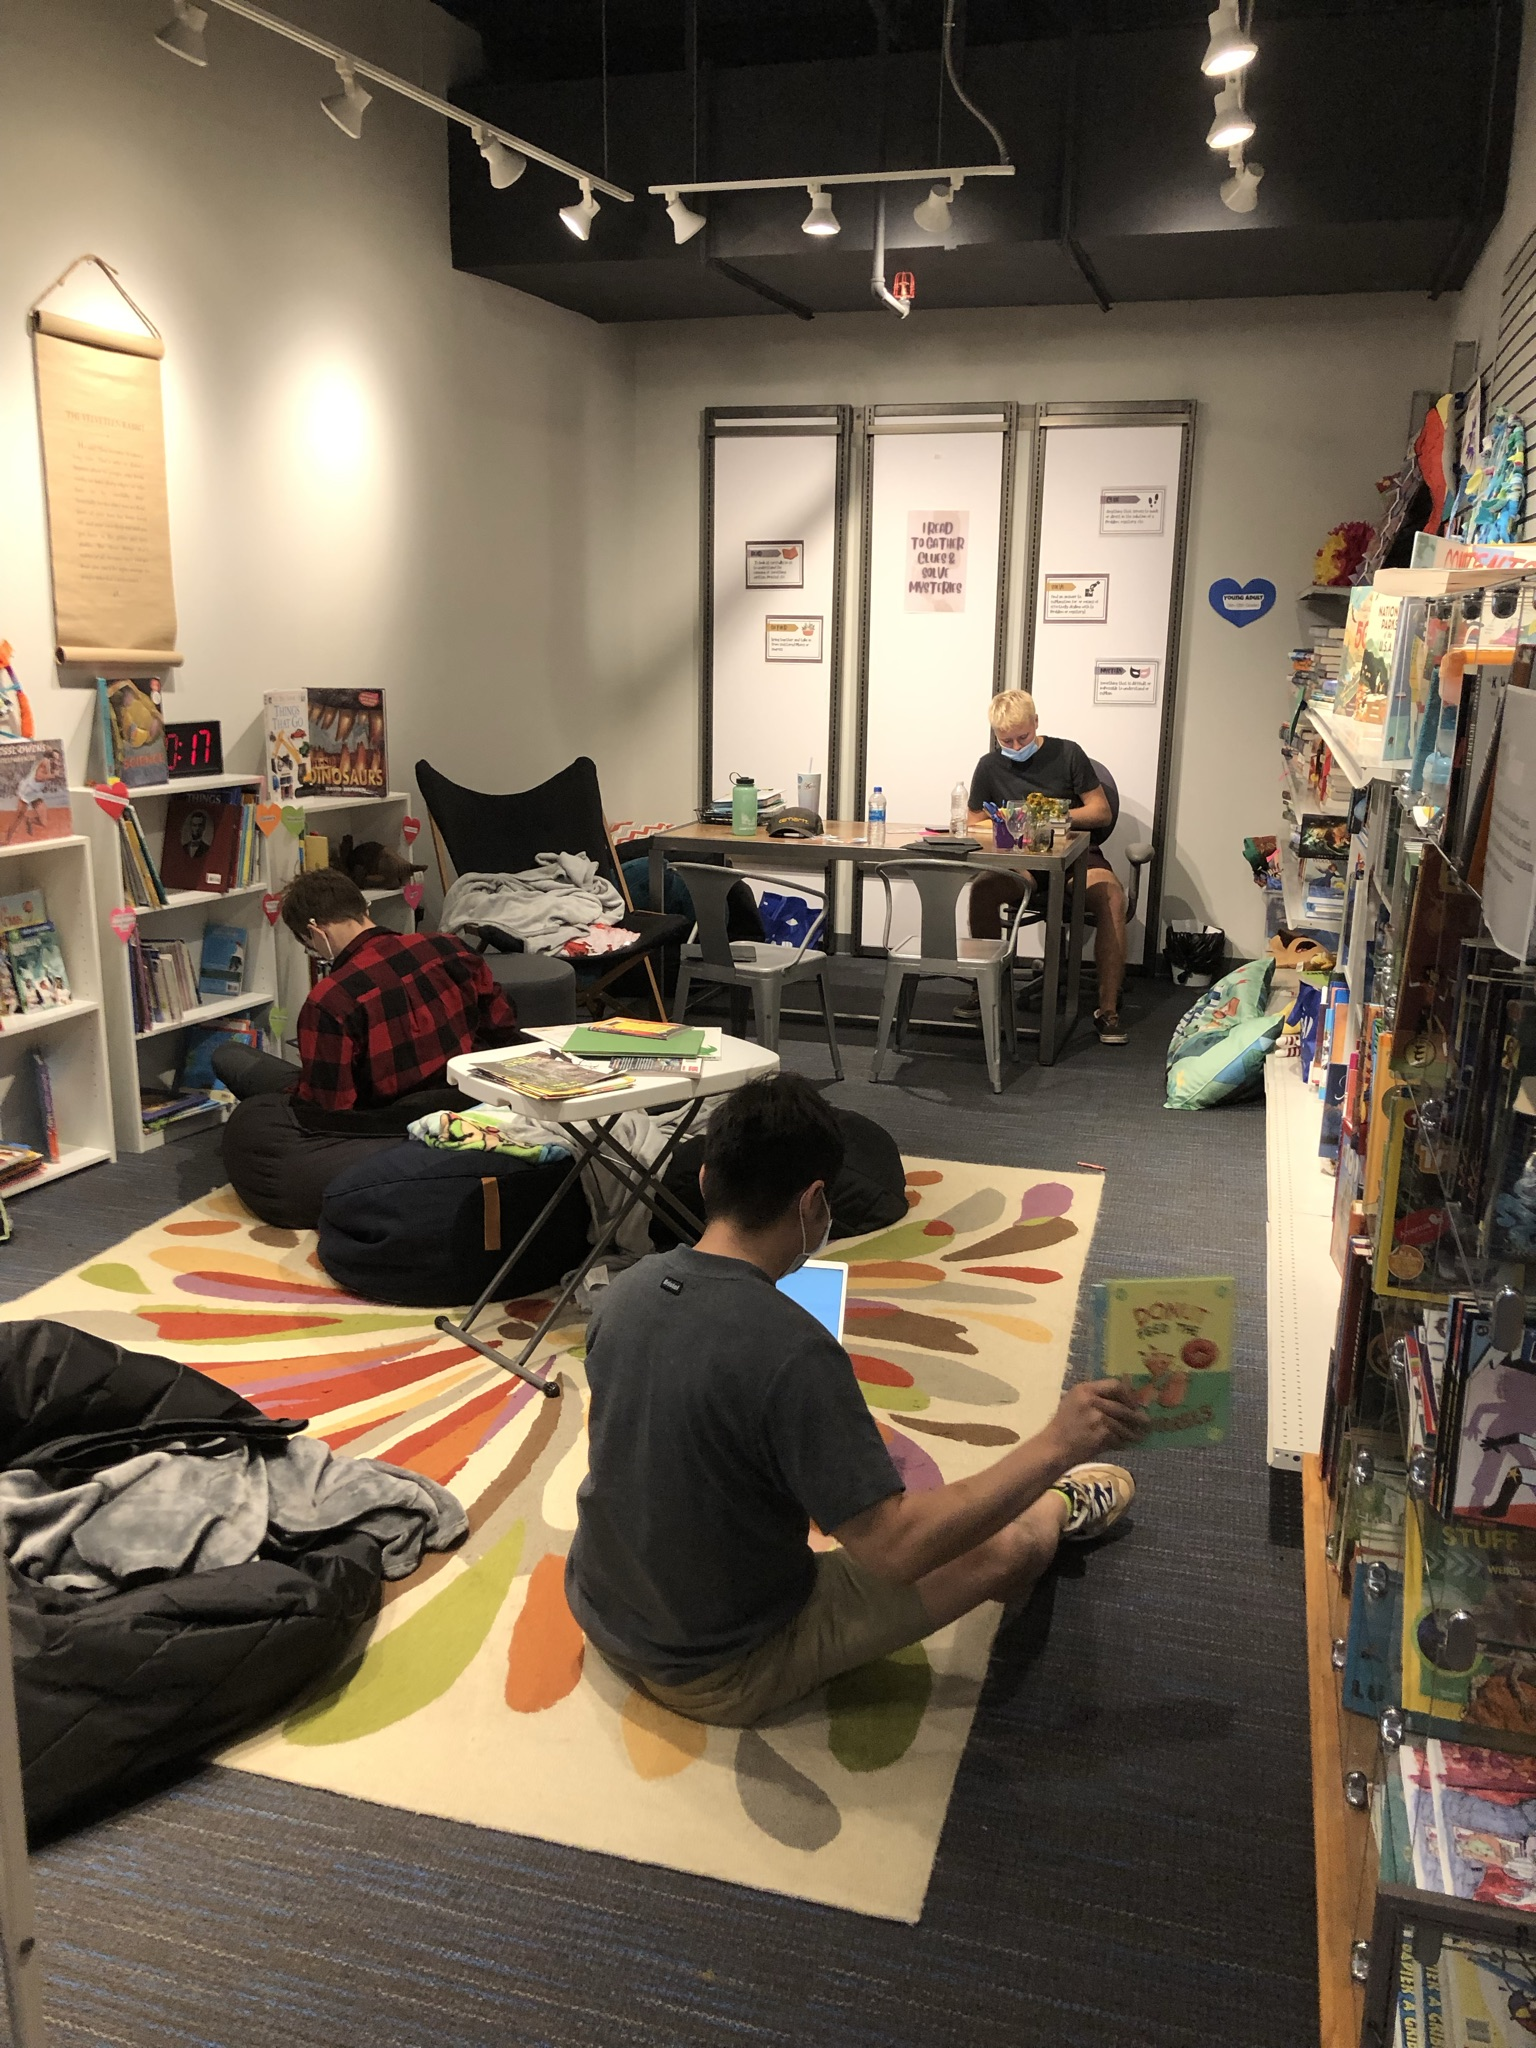 Volunteers helped to inventory hundreds of books in the City Impact library.